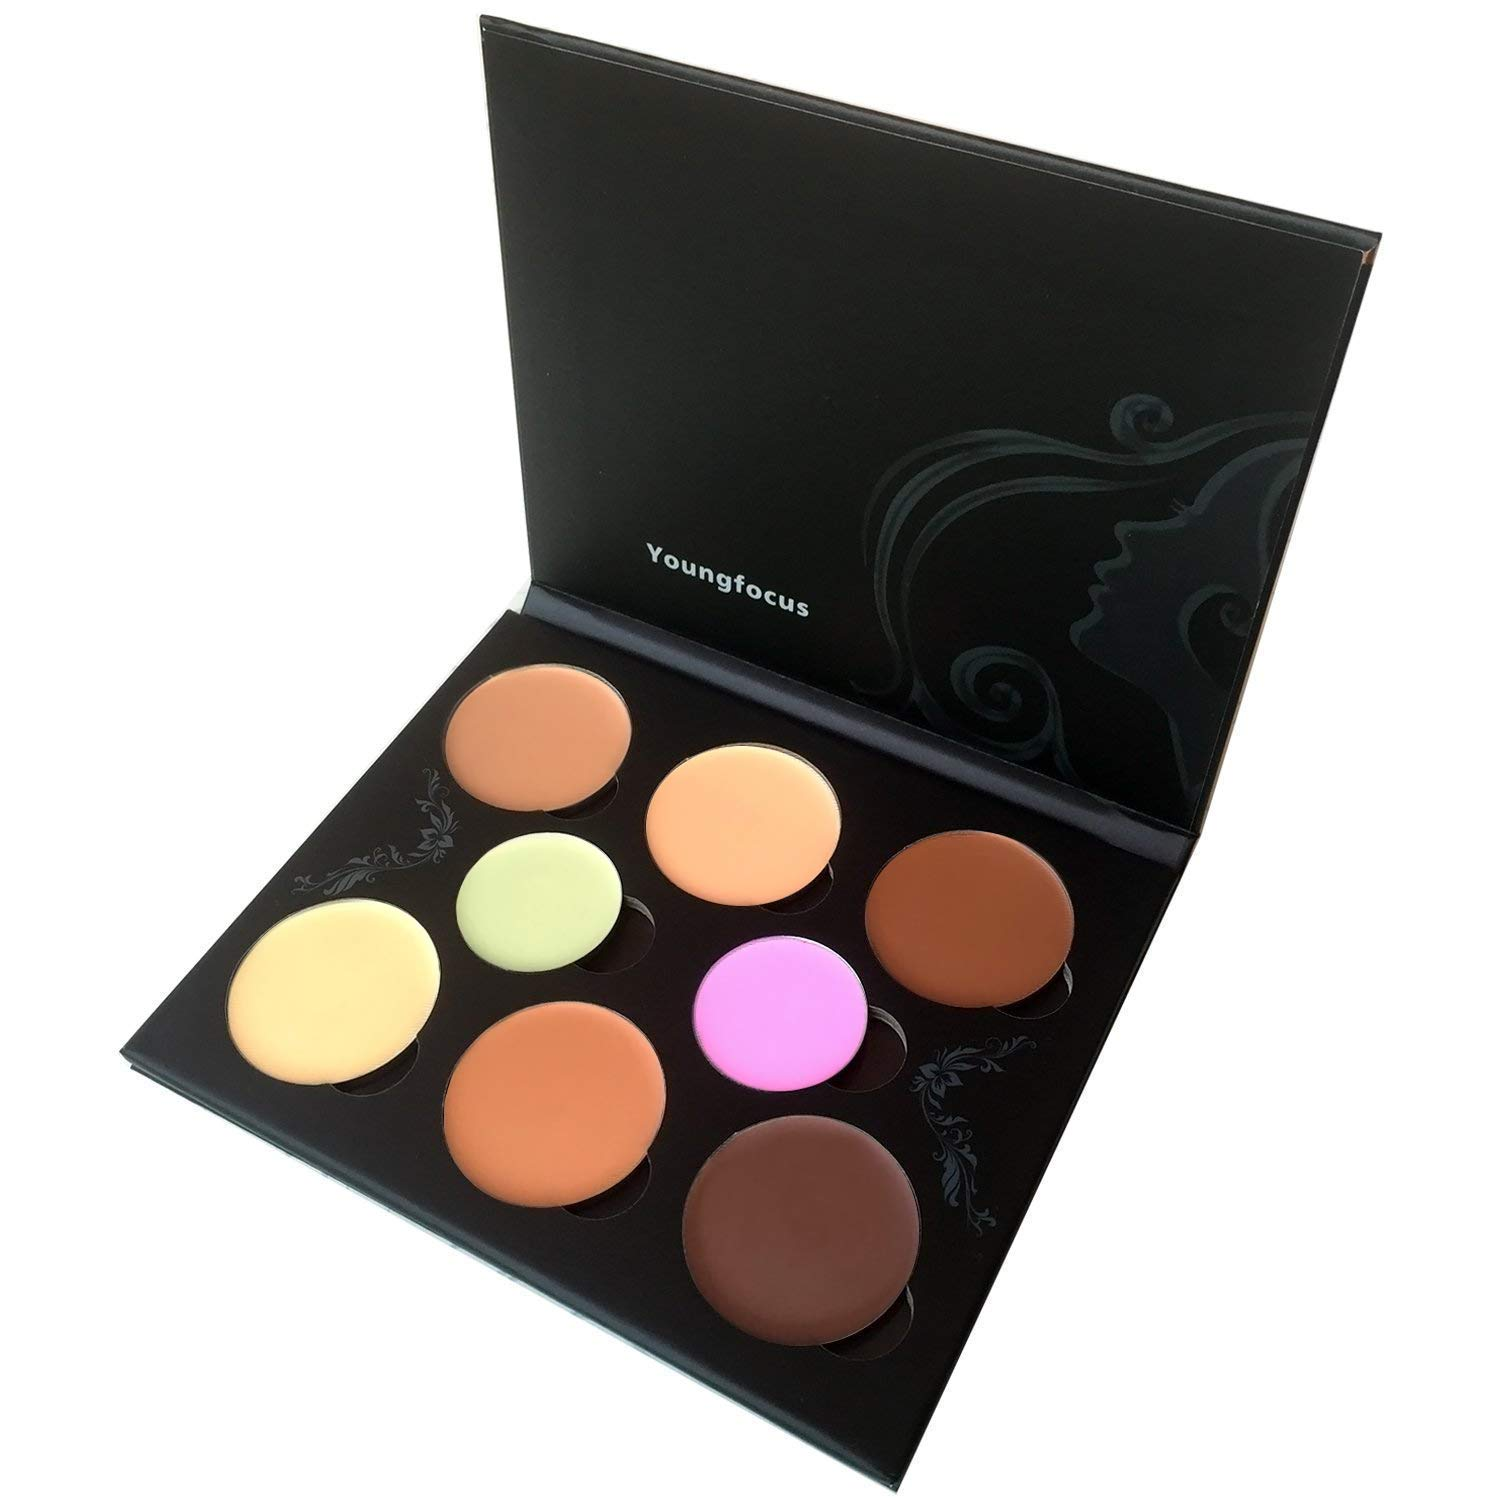 Youngfocus Cosmetics Cream Contour Best 8 Colors Contouring Foundation - Highlighting Makeup Kit/Concealer Palette - Vegan, Cruelty Free and Hypoallergenic - Instruction Manual